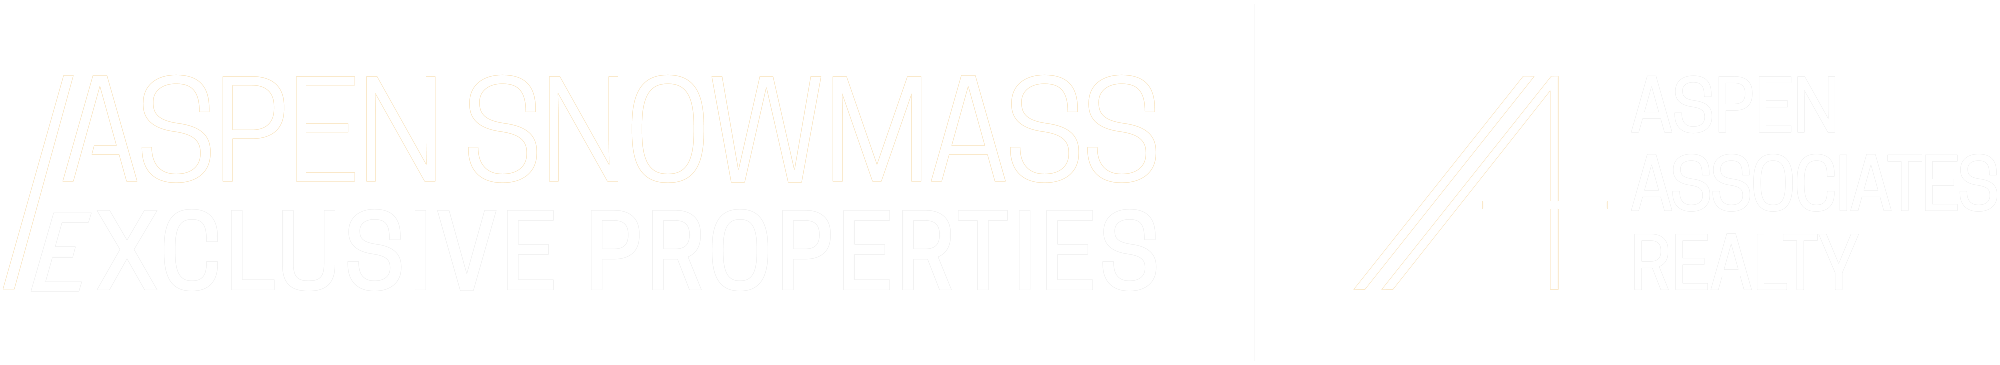 Aspen Snowmass Exclusive Properties Logo